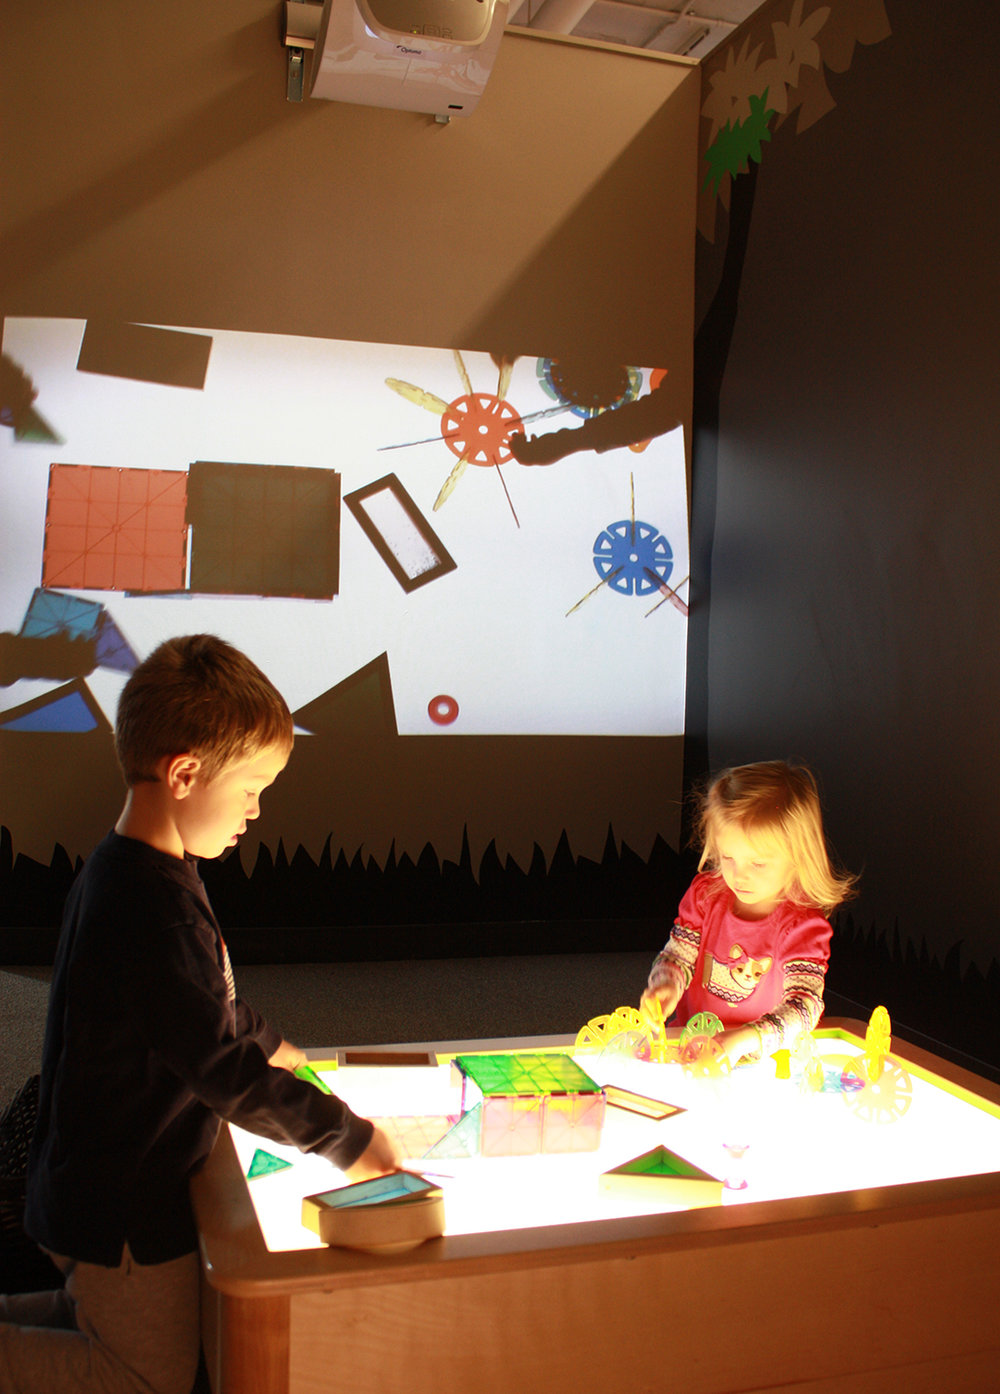 Light table and projection. The designed light table enables children to interact with shapes, color and composition over its surface. At the same time an overhead camera records live movement for it to be projected on the wall.